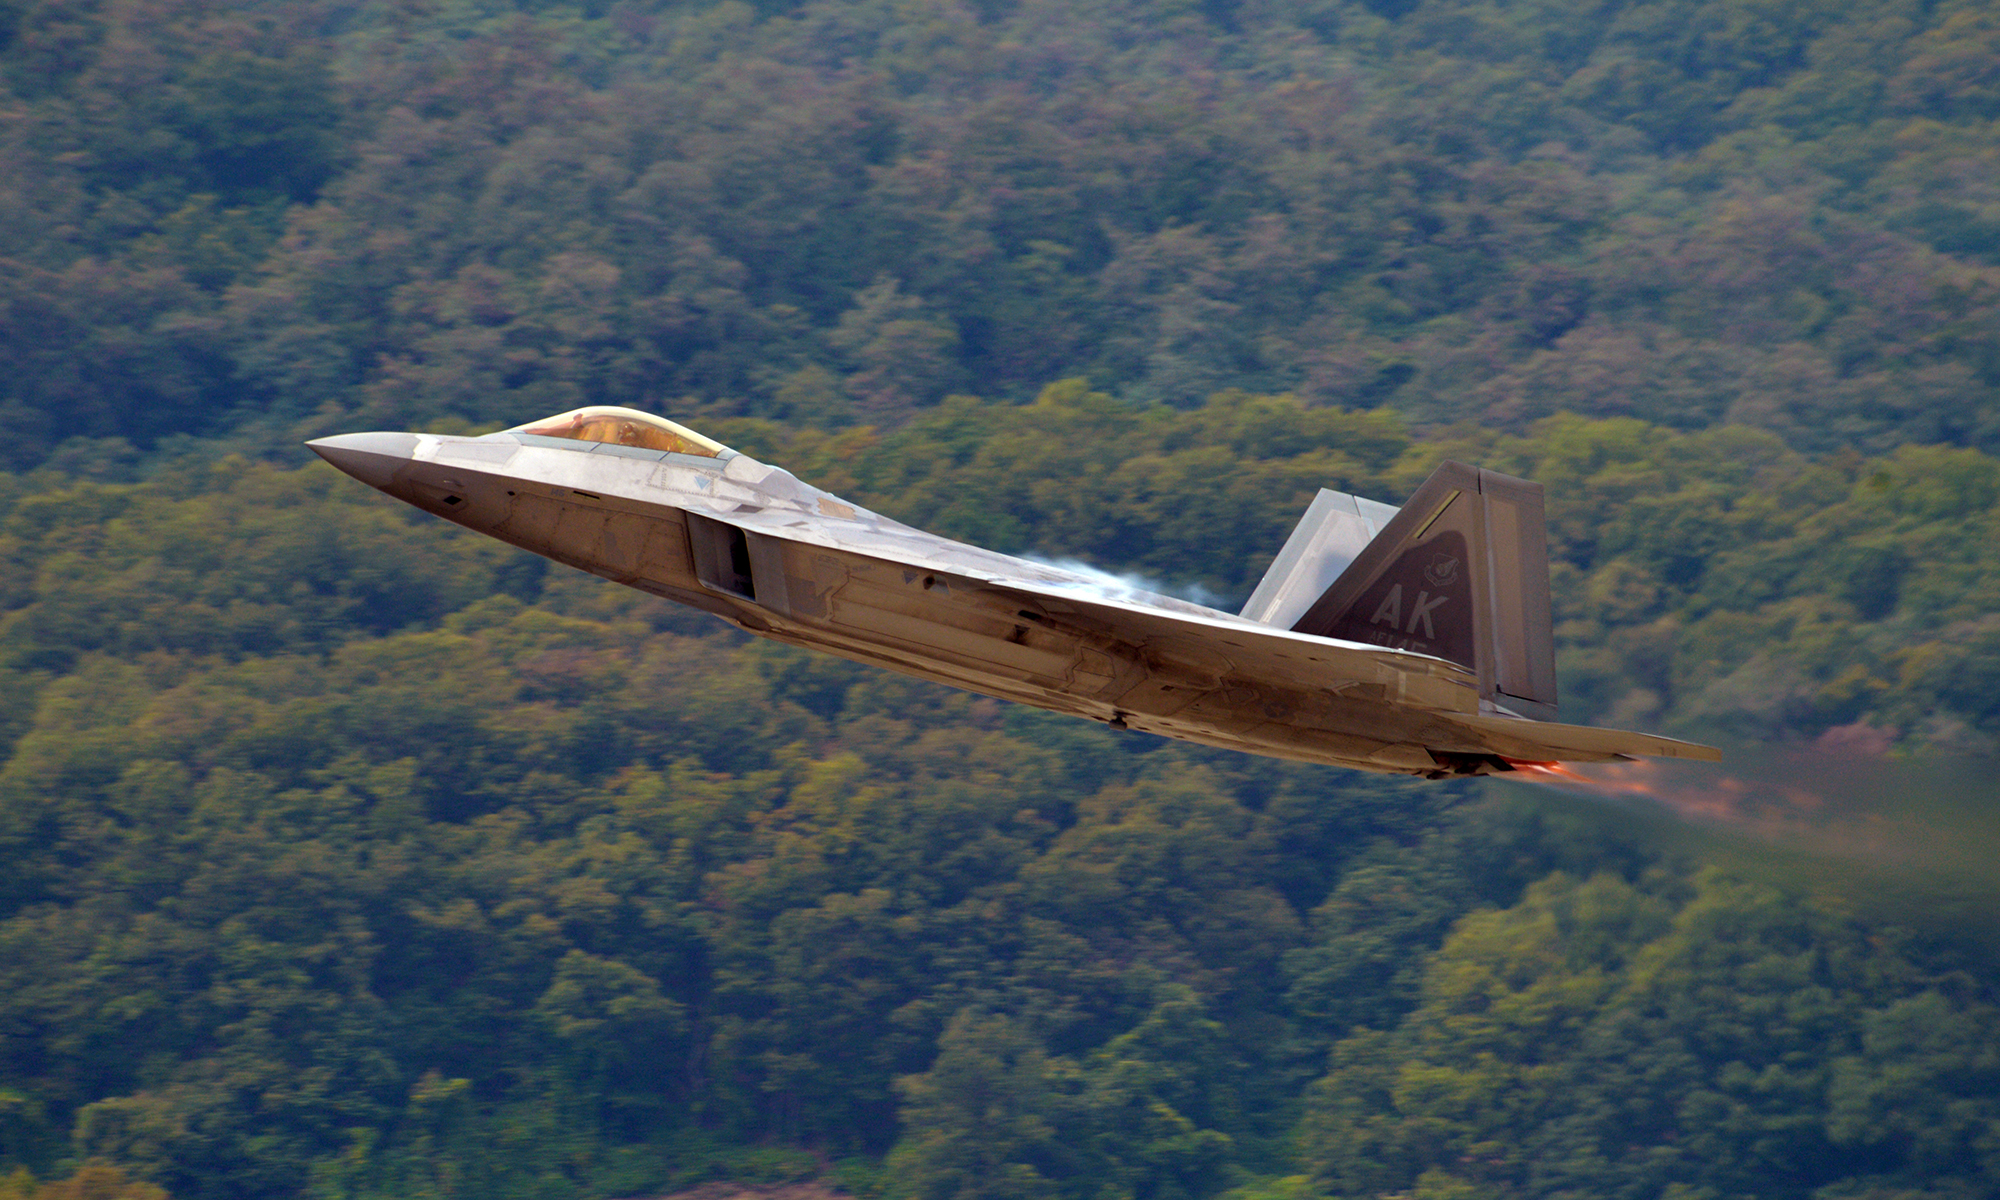 A U.S. Air Force F-22 Raptor from the Air Combat Command F-22 Raptor Demonstration Team takes off during the Seoul International Aerospace and Defense Exhibition (ADEX) 2017 press day at the Seoul Airport, Republic of Korea, Oct. 16, 2017. The (Staff Sgt. Alex Fox Echols III/Air Force)